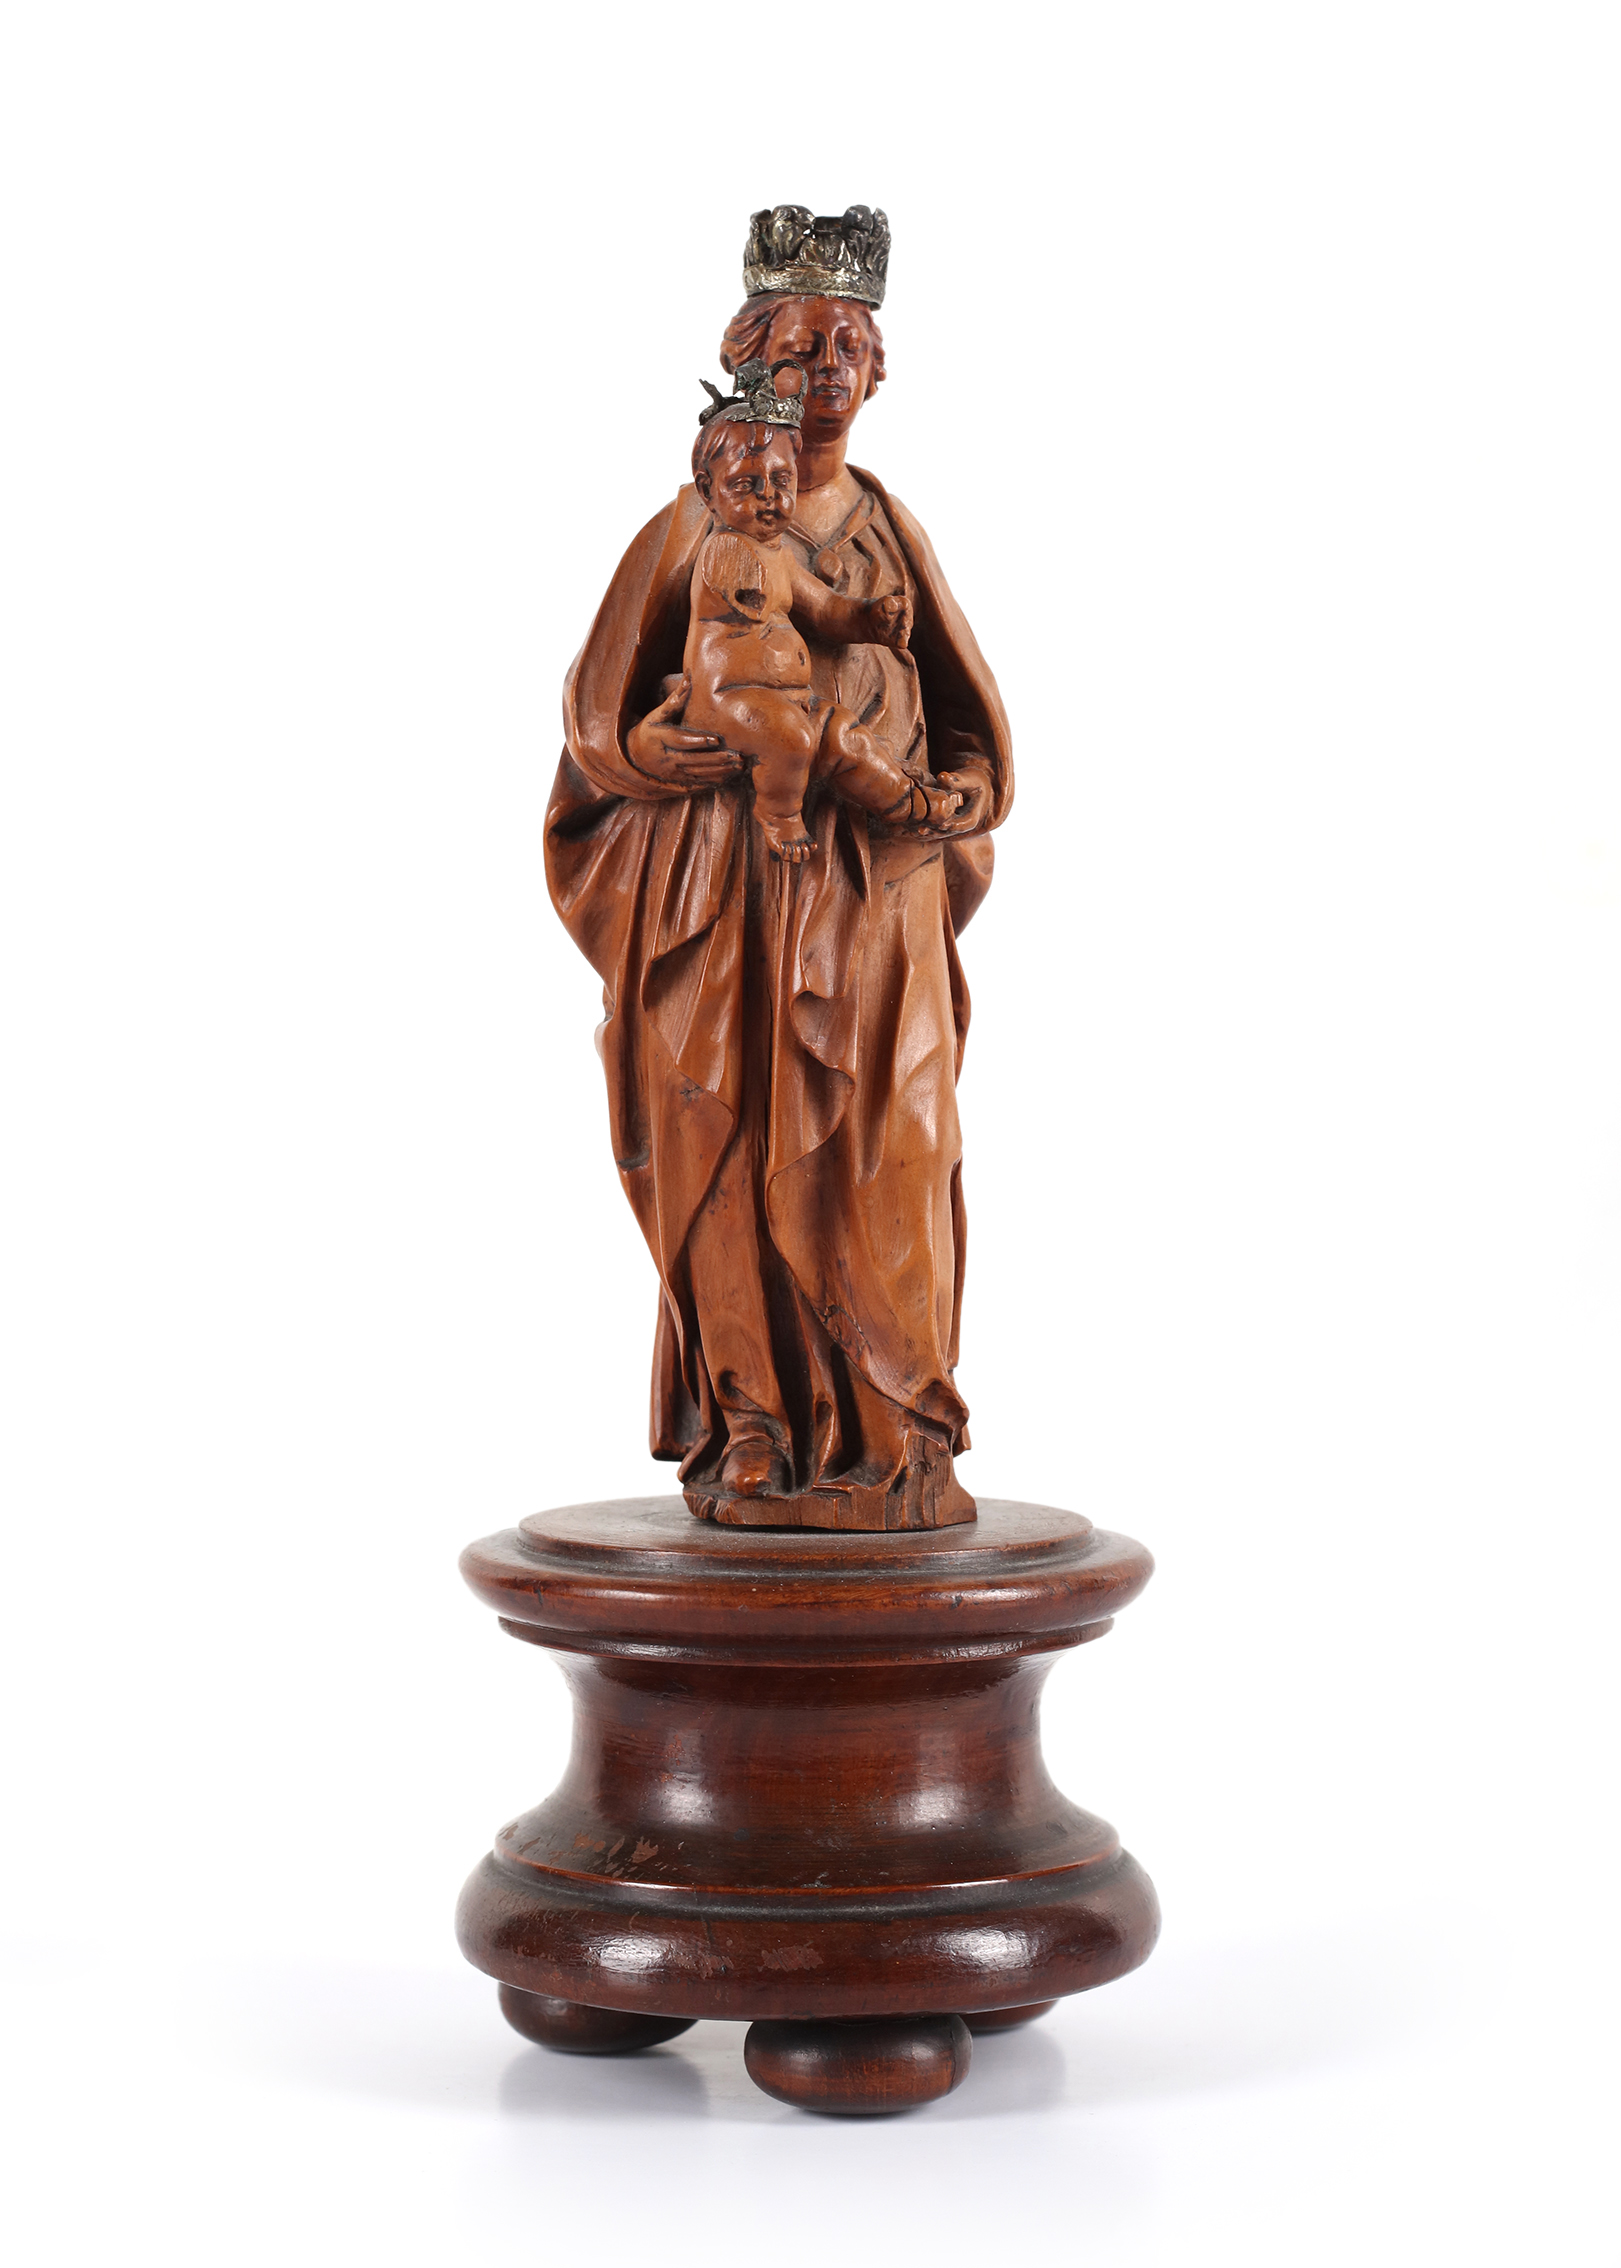 A boxwood group representing the Virgin and Child